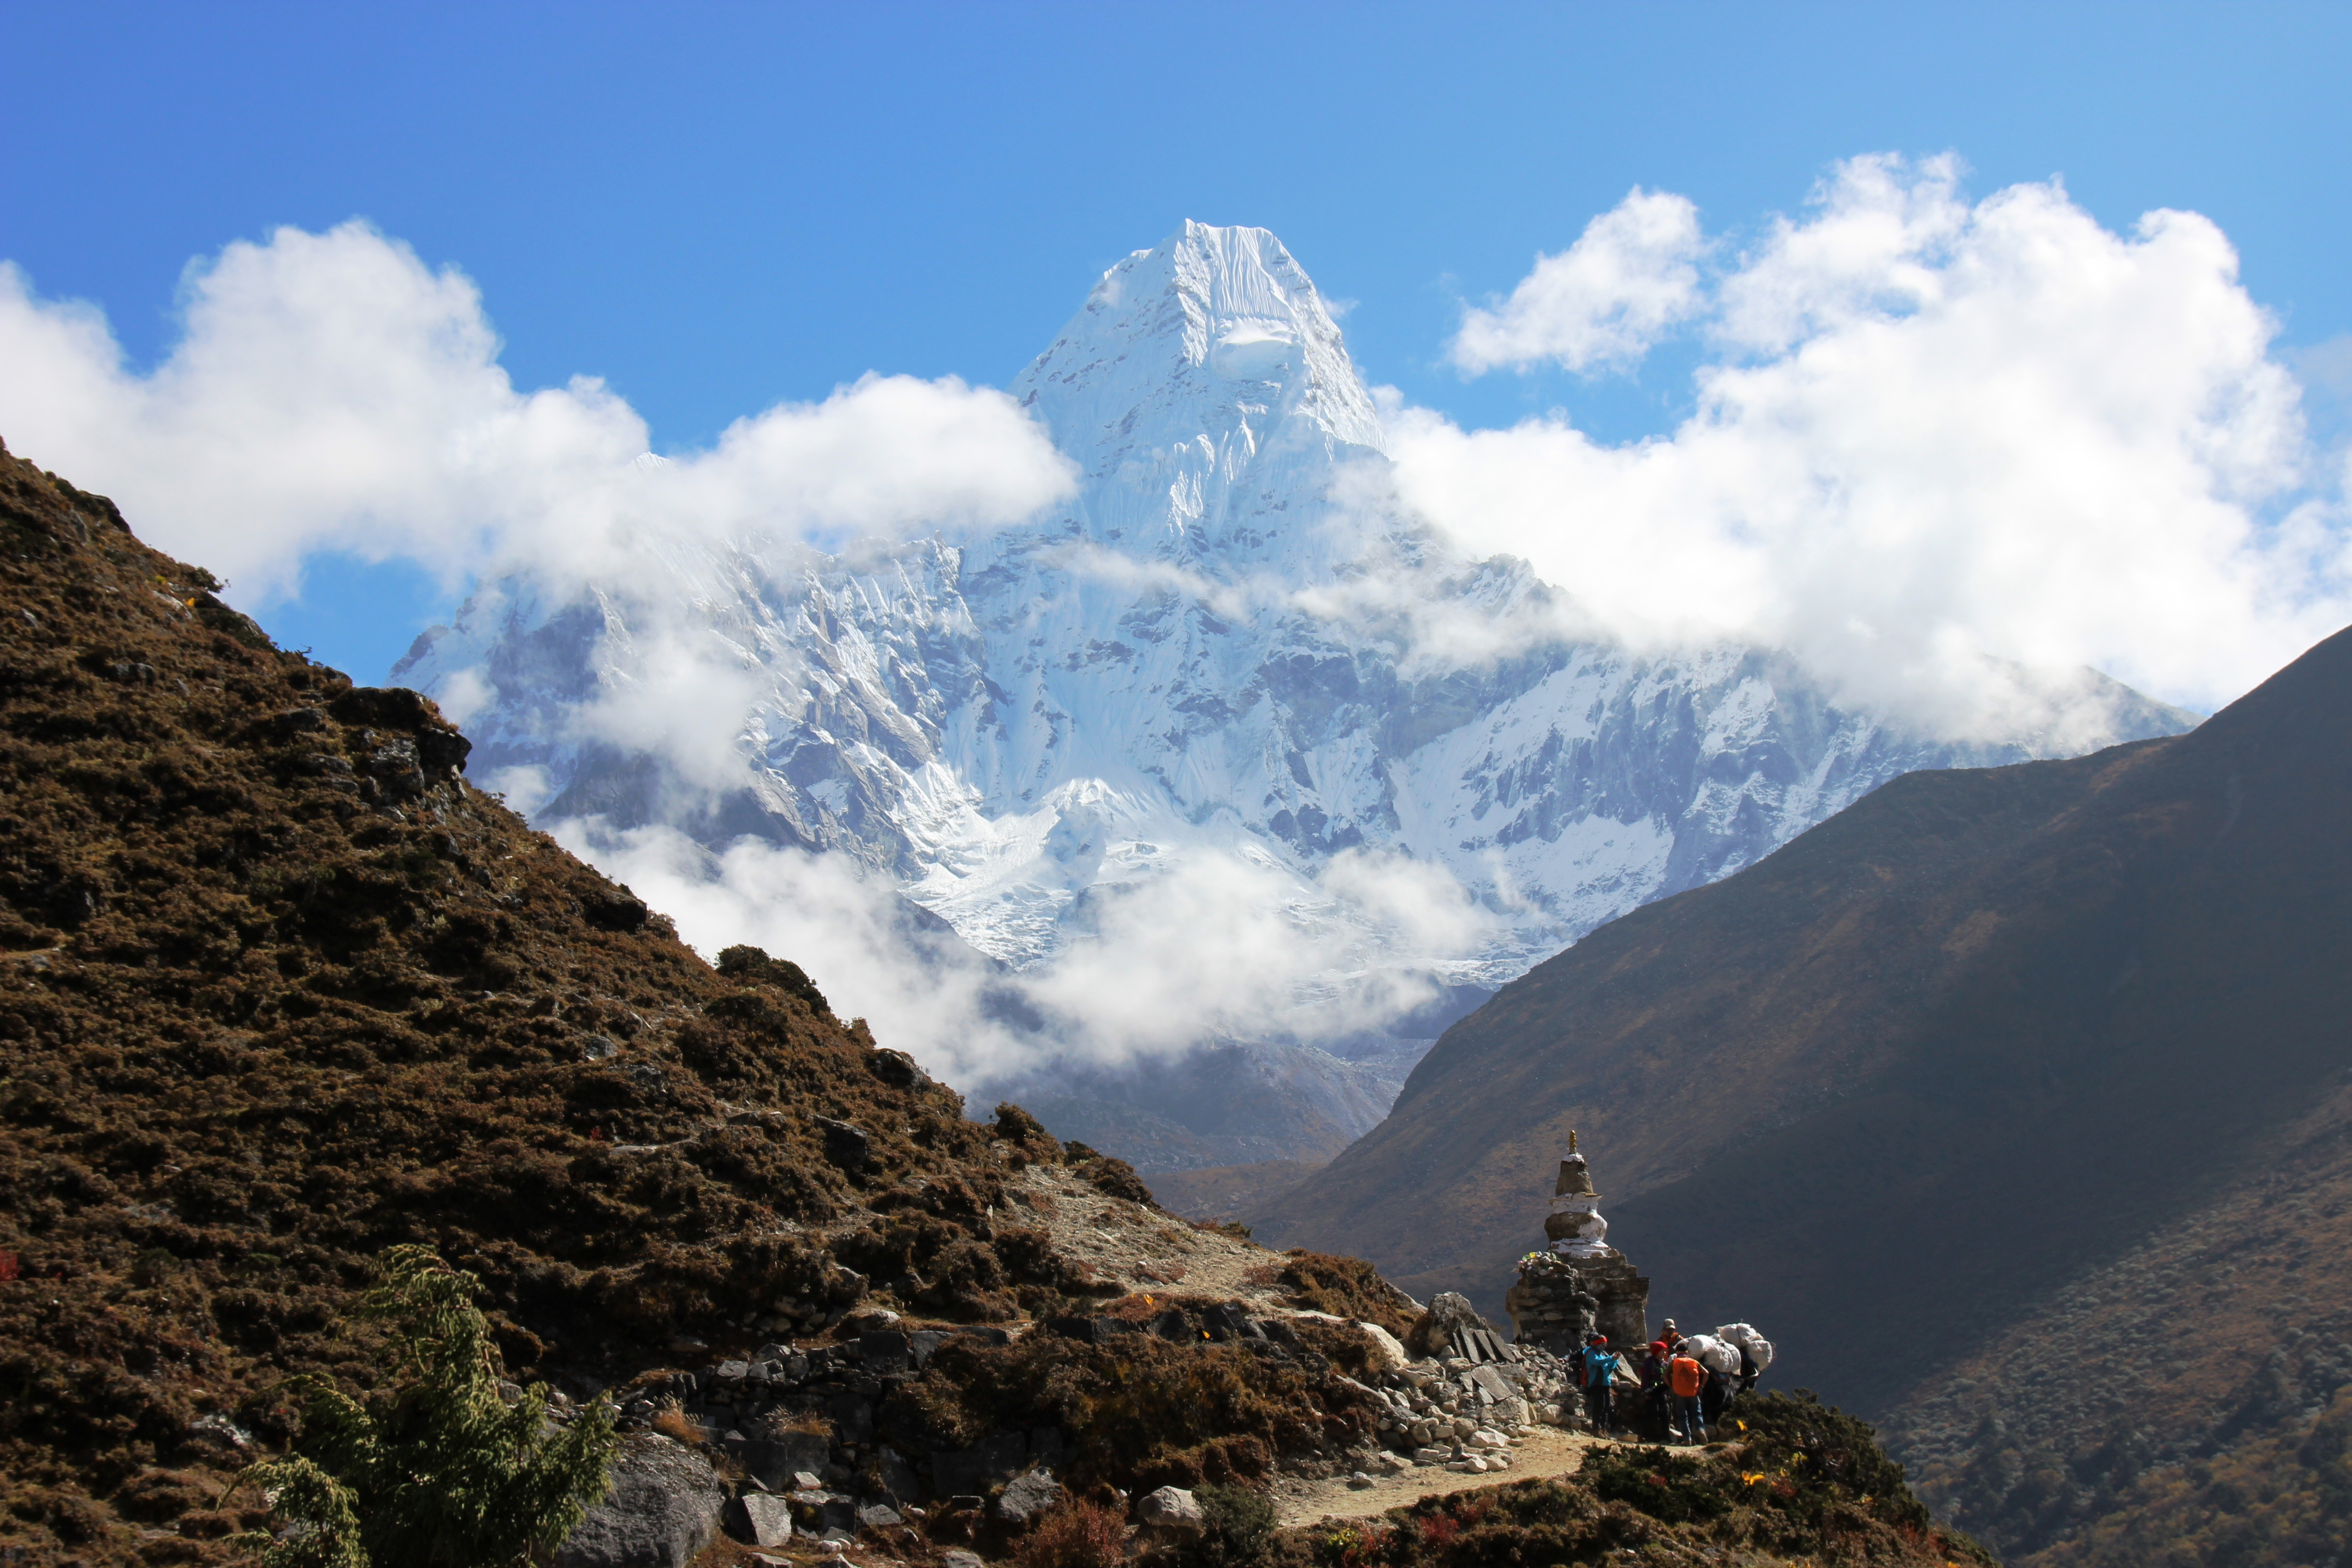 Trail with Stupa - Mountain Background